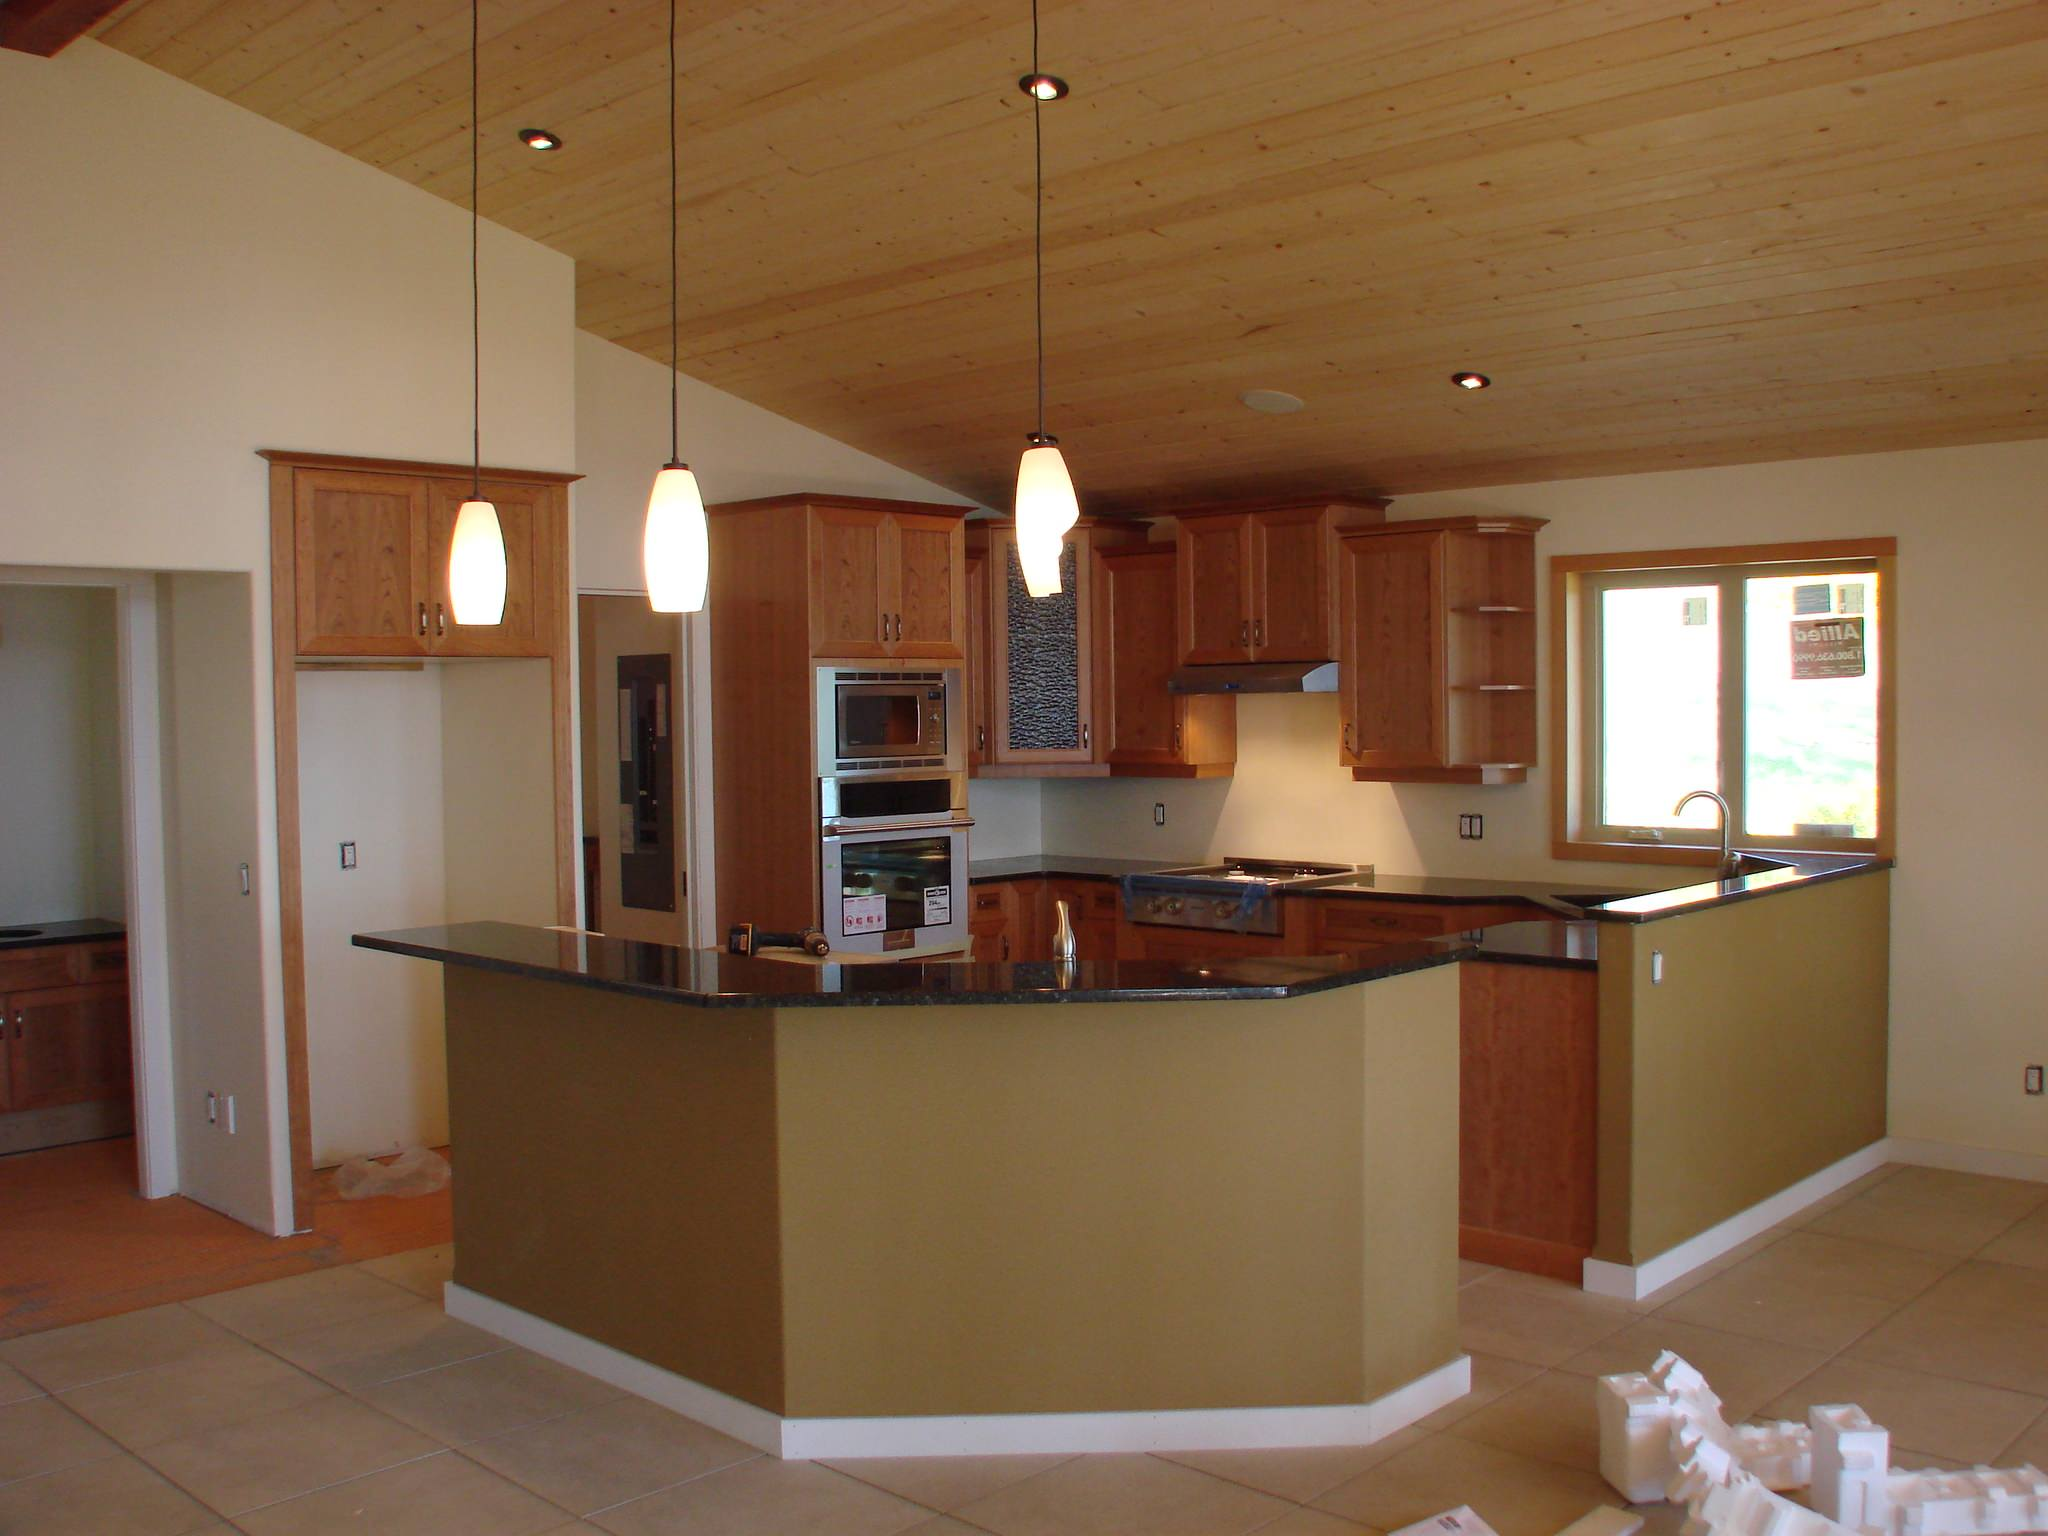 Clear Stained Shaker Style Kitchen With Dovetail Drawers